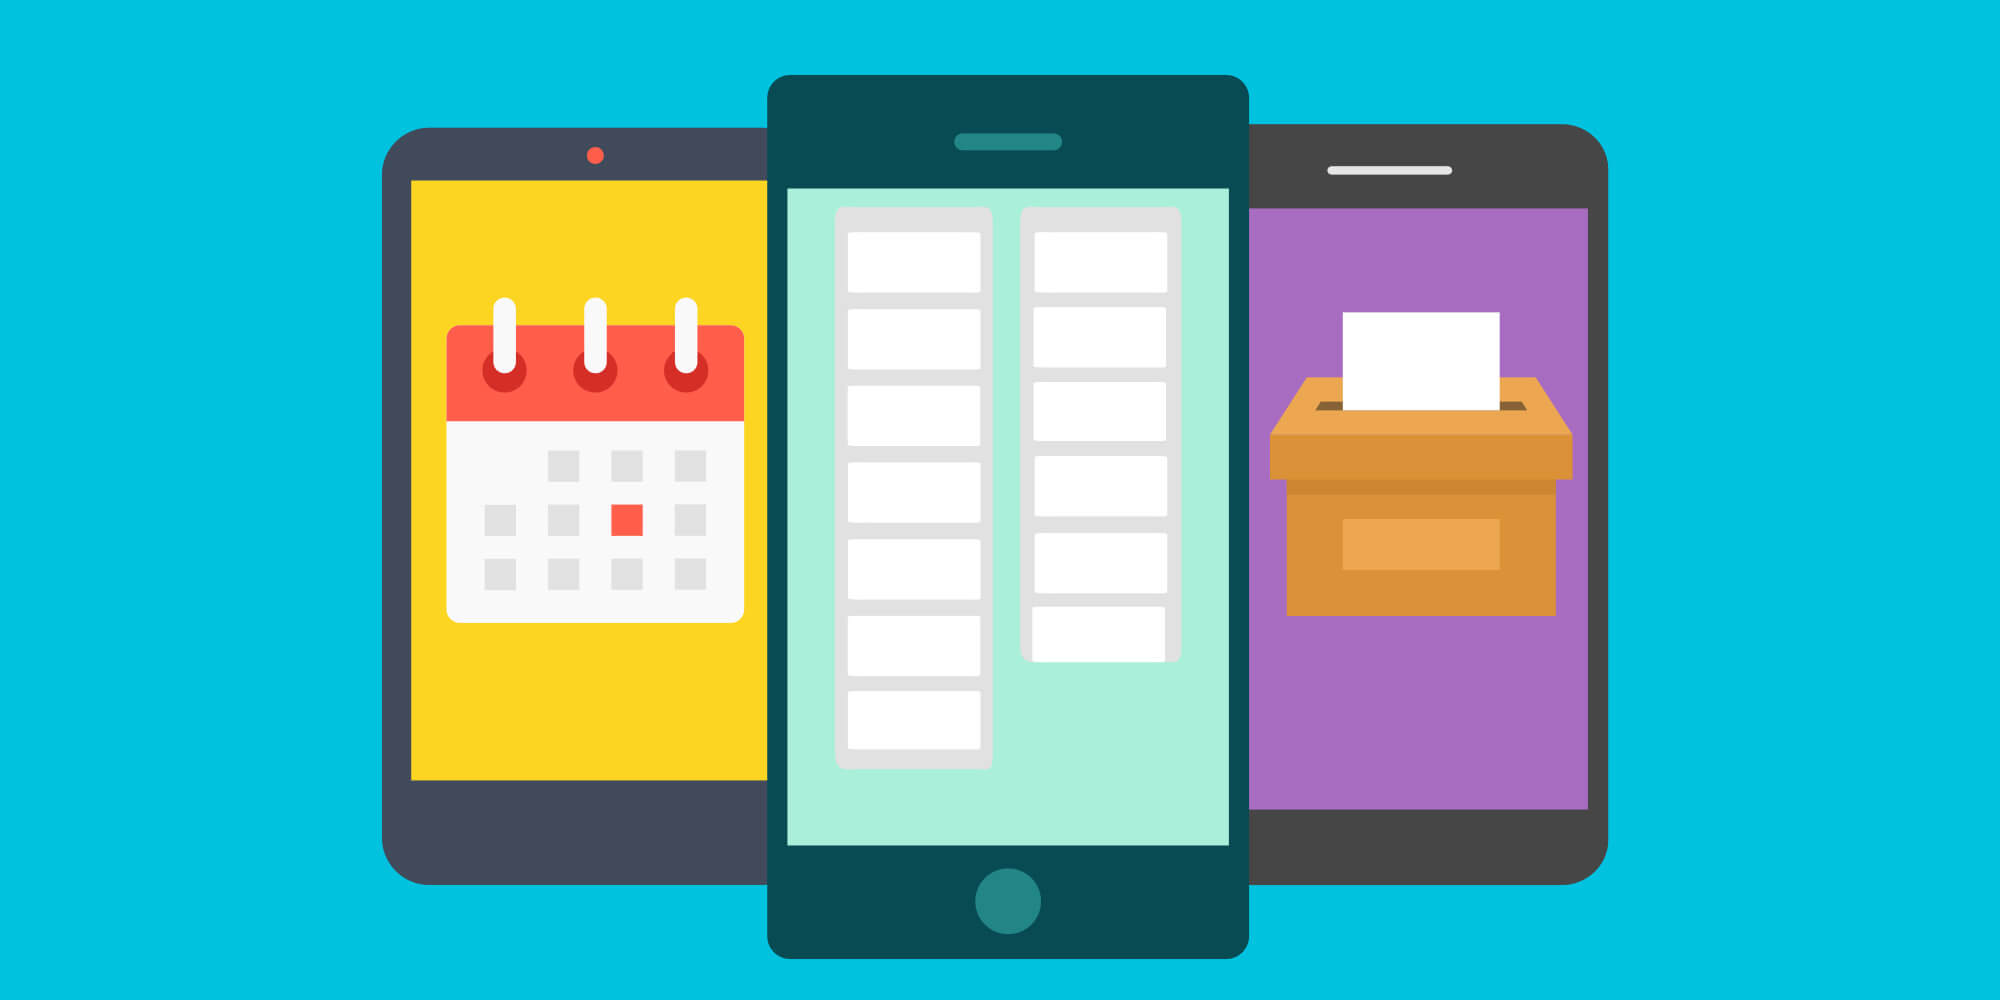 New! Calendar And Voting Power-Ups Are Now On Trello Mobile Apps